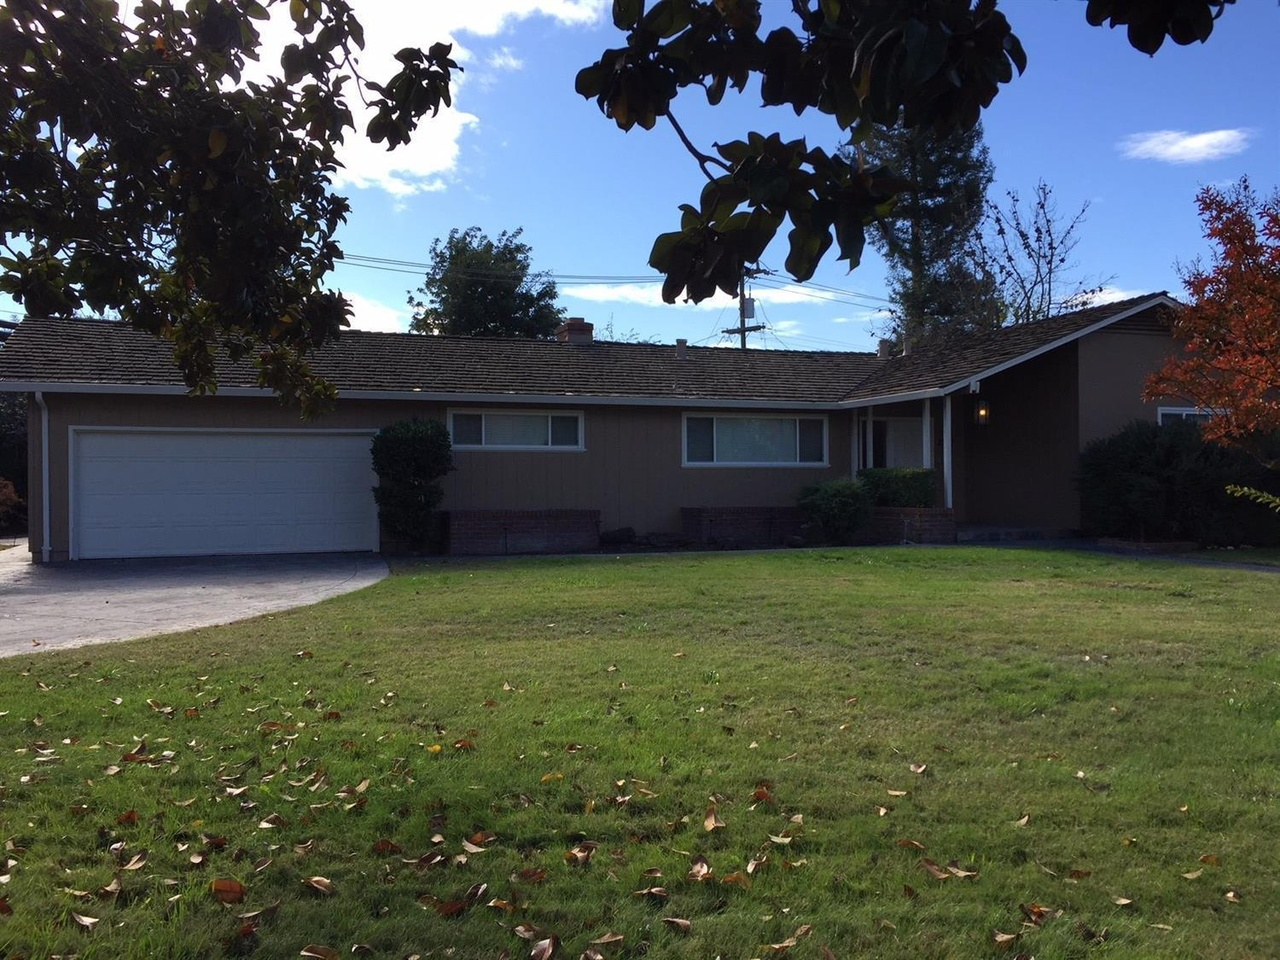 2210 W Benjamin Holt Dr Stockton Ca 95207 Mls 17074971 Redfin